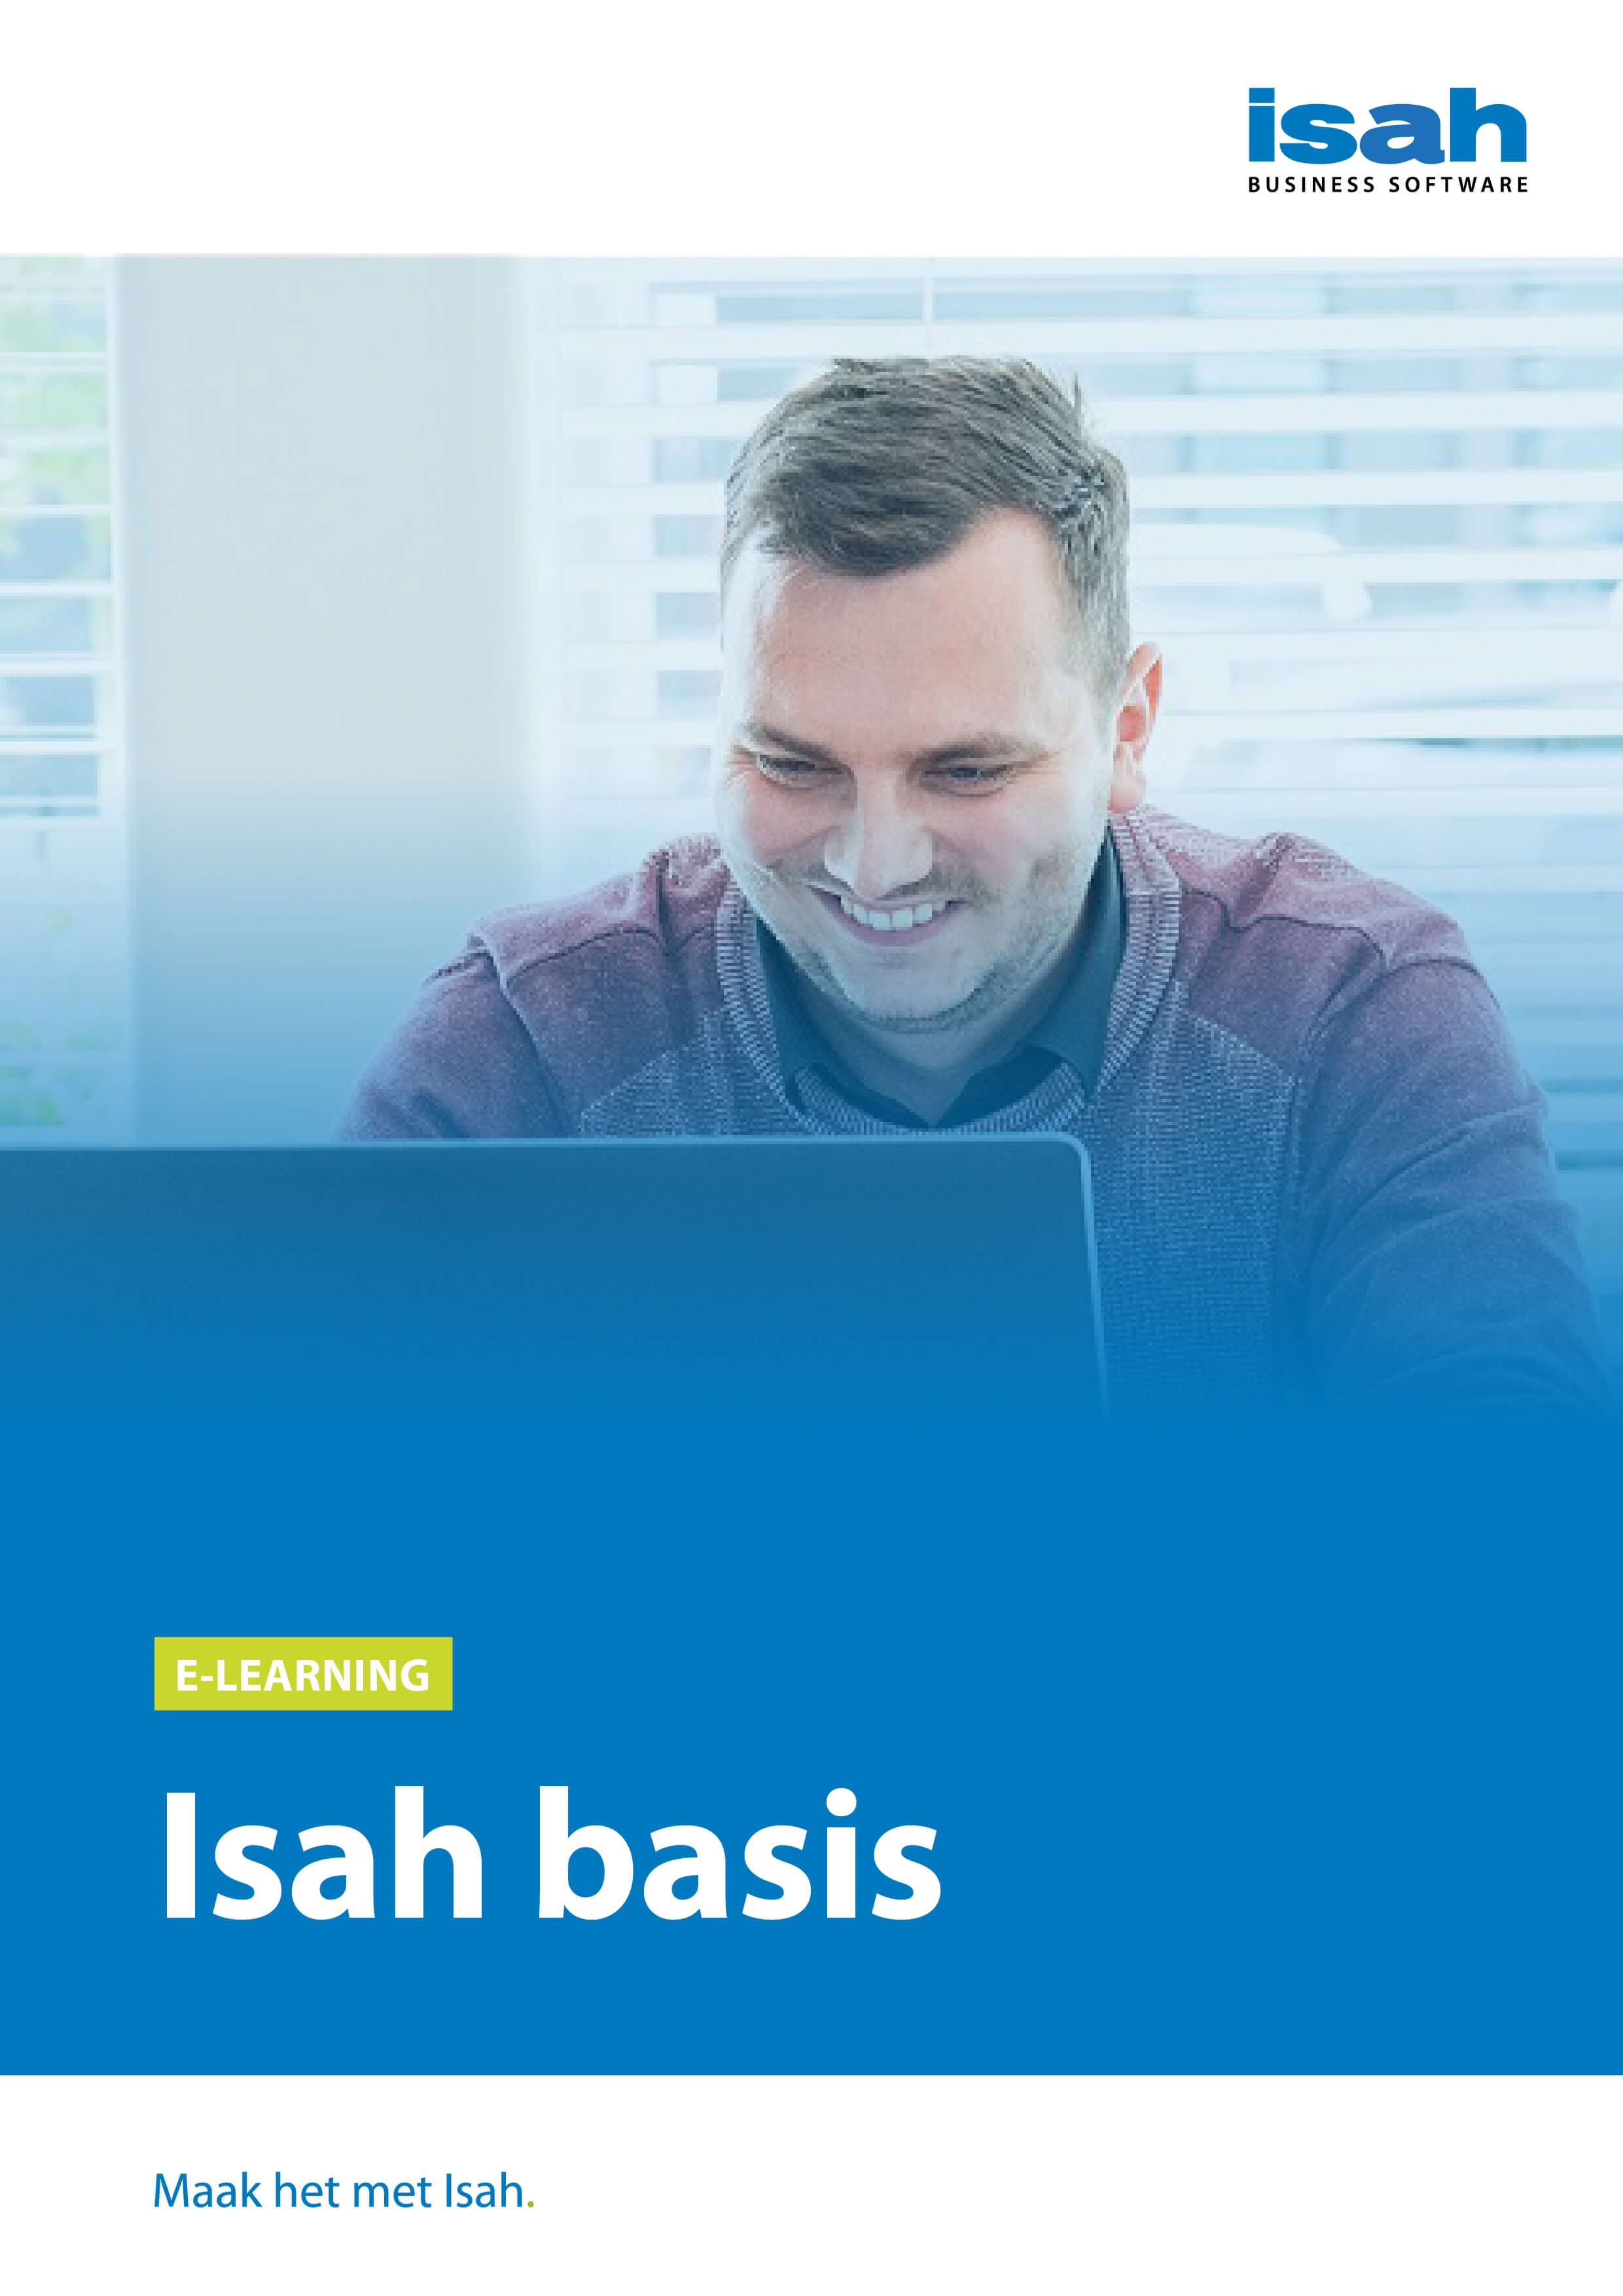 isah-kenniscentrum-e-learning-isah-basis